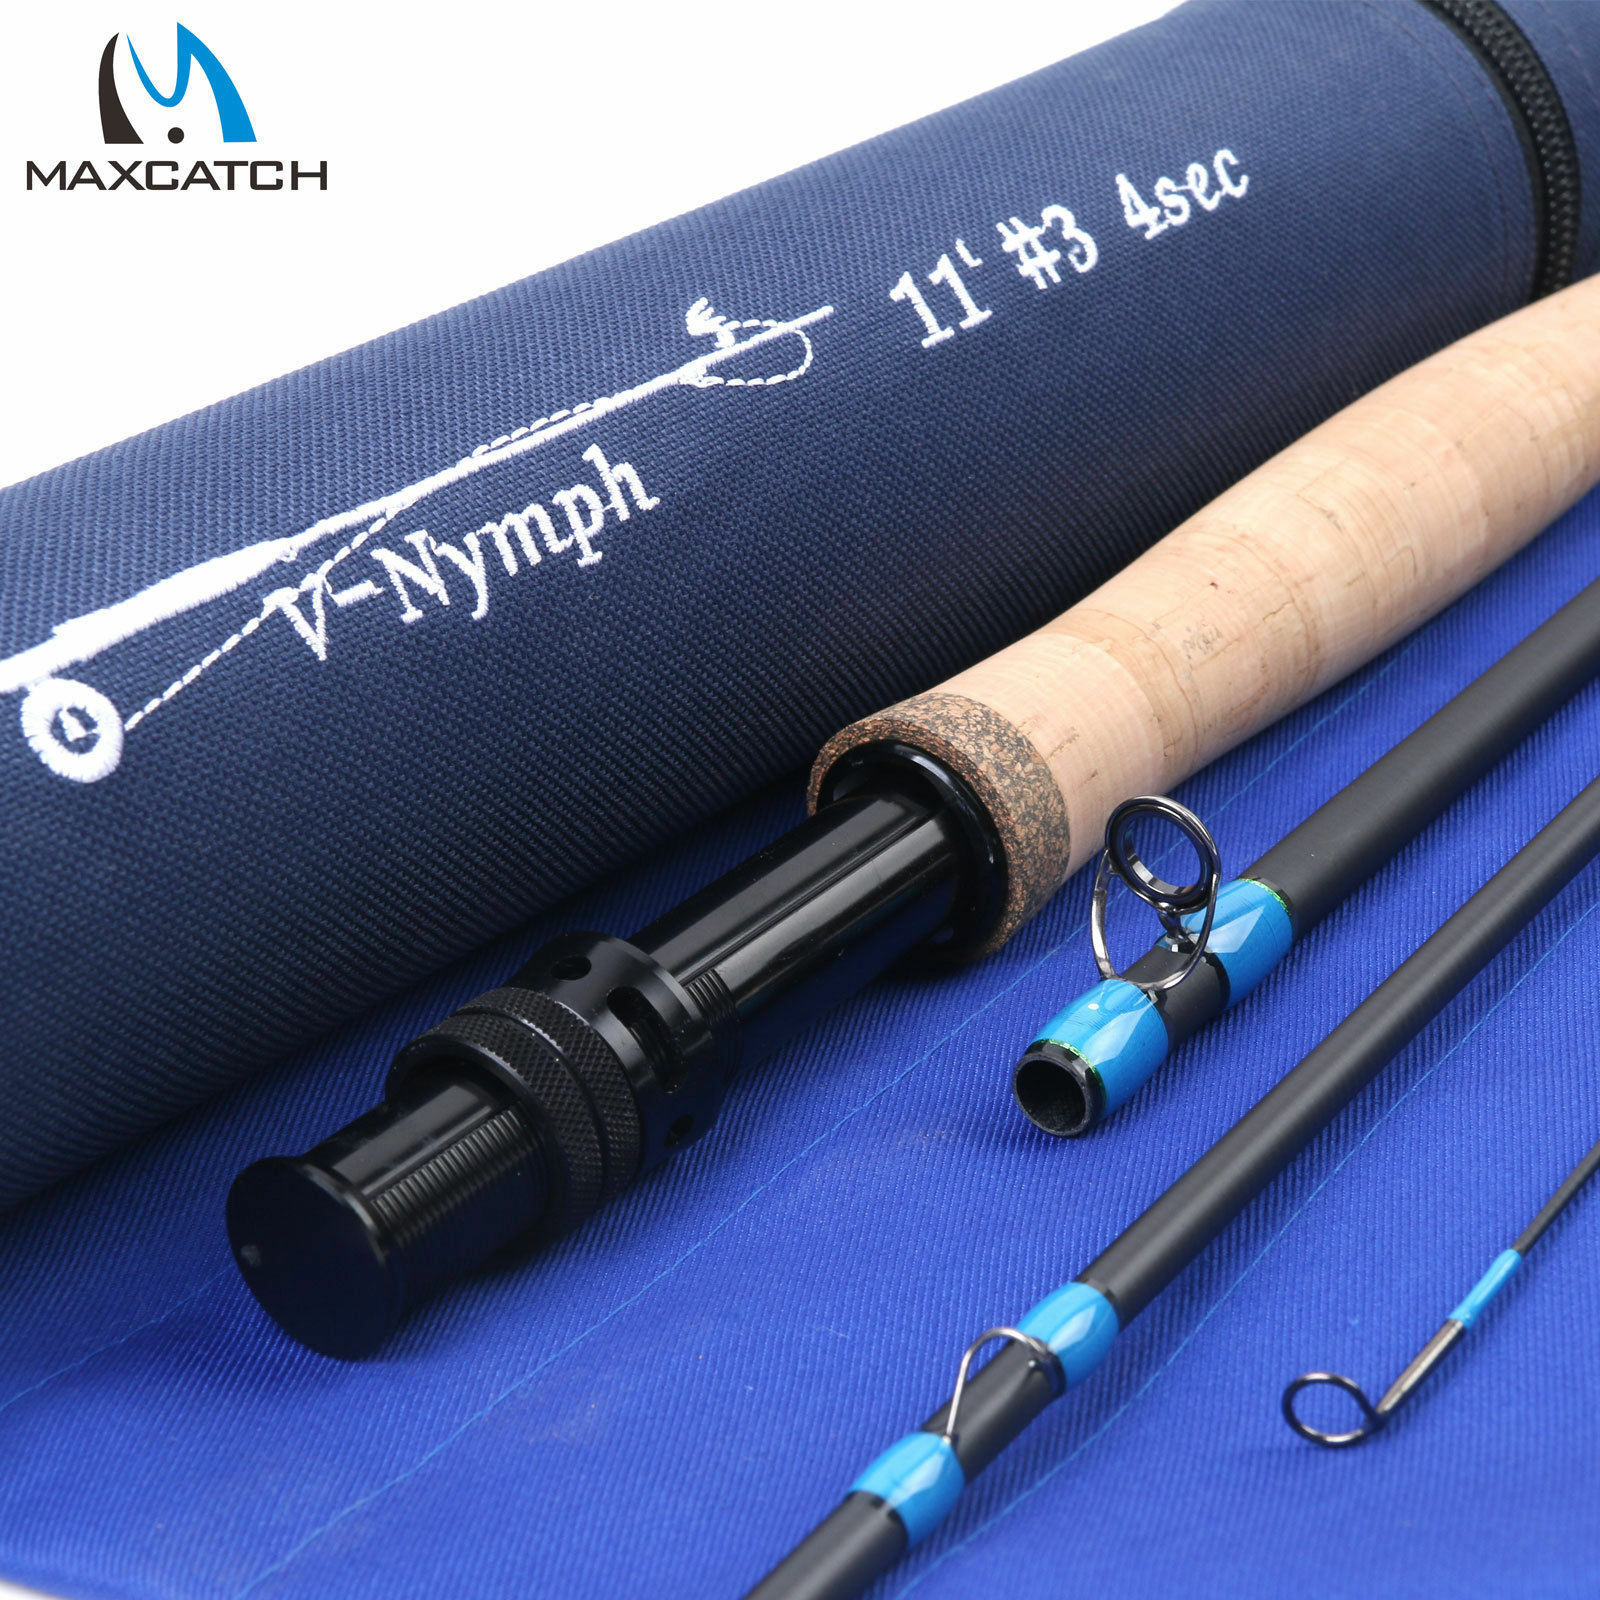 Maxcatch Fly Rod Nymph 10FT 11FT 2 3 4WT 4Sec Fast Action Graphite IM10